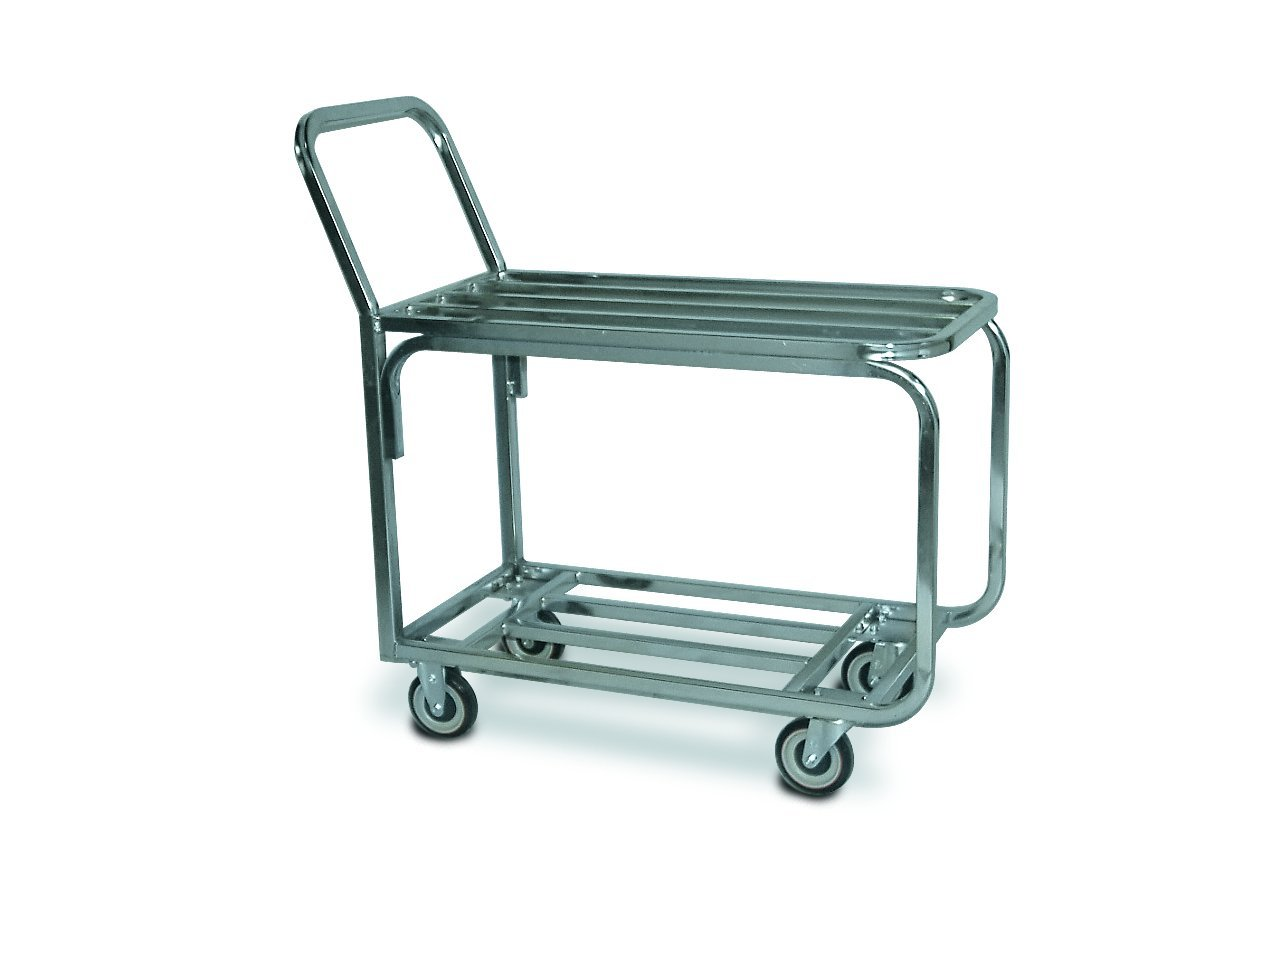 Lockwood SKP-36-AL Aluminum Grocery Produce Stock Truck with Plate Casters, 1000 lbs Capacity, 36'' Width x 42'' Height x 18-1/2'' Depth, Small by Lockwood